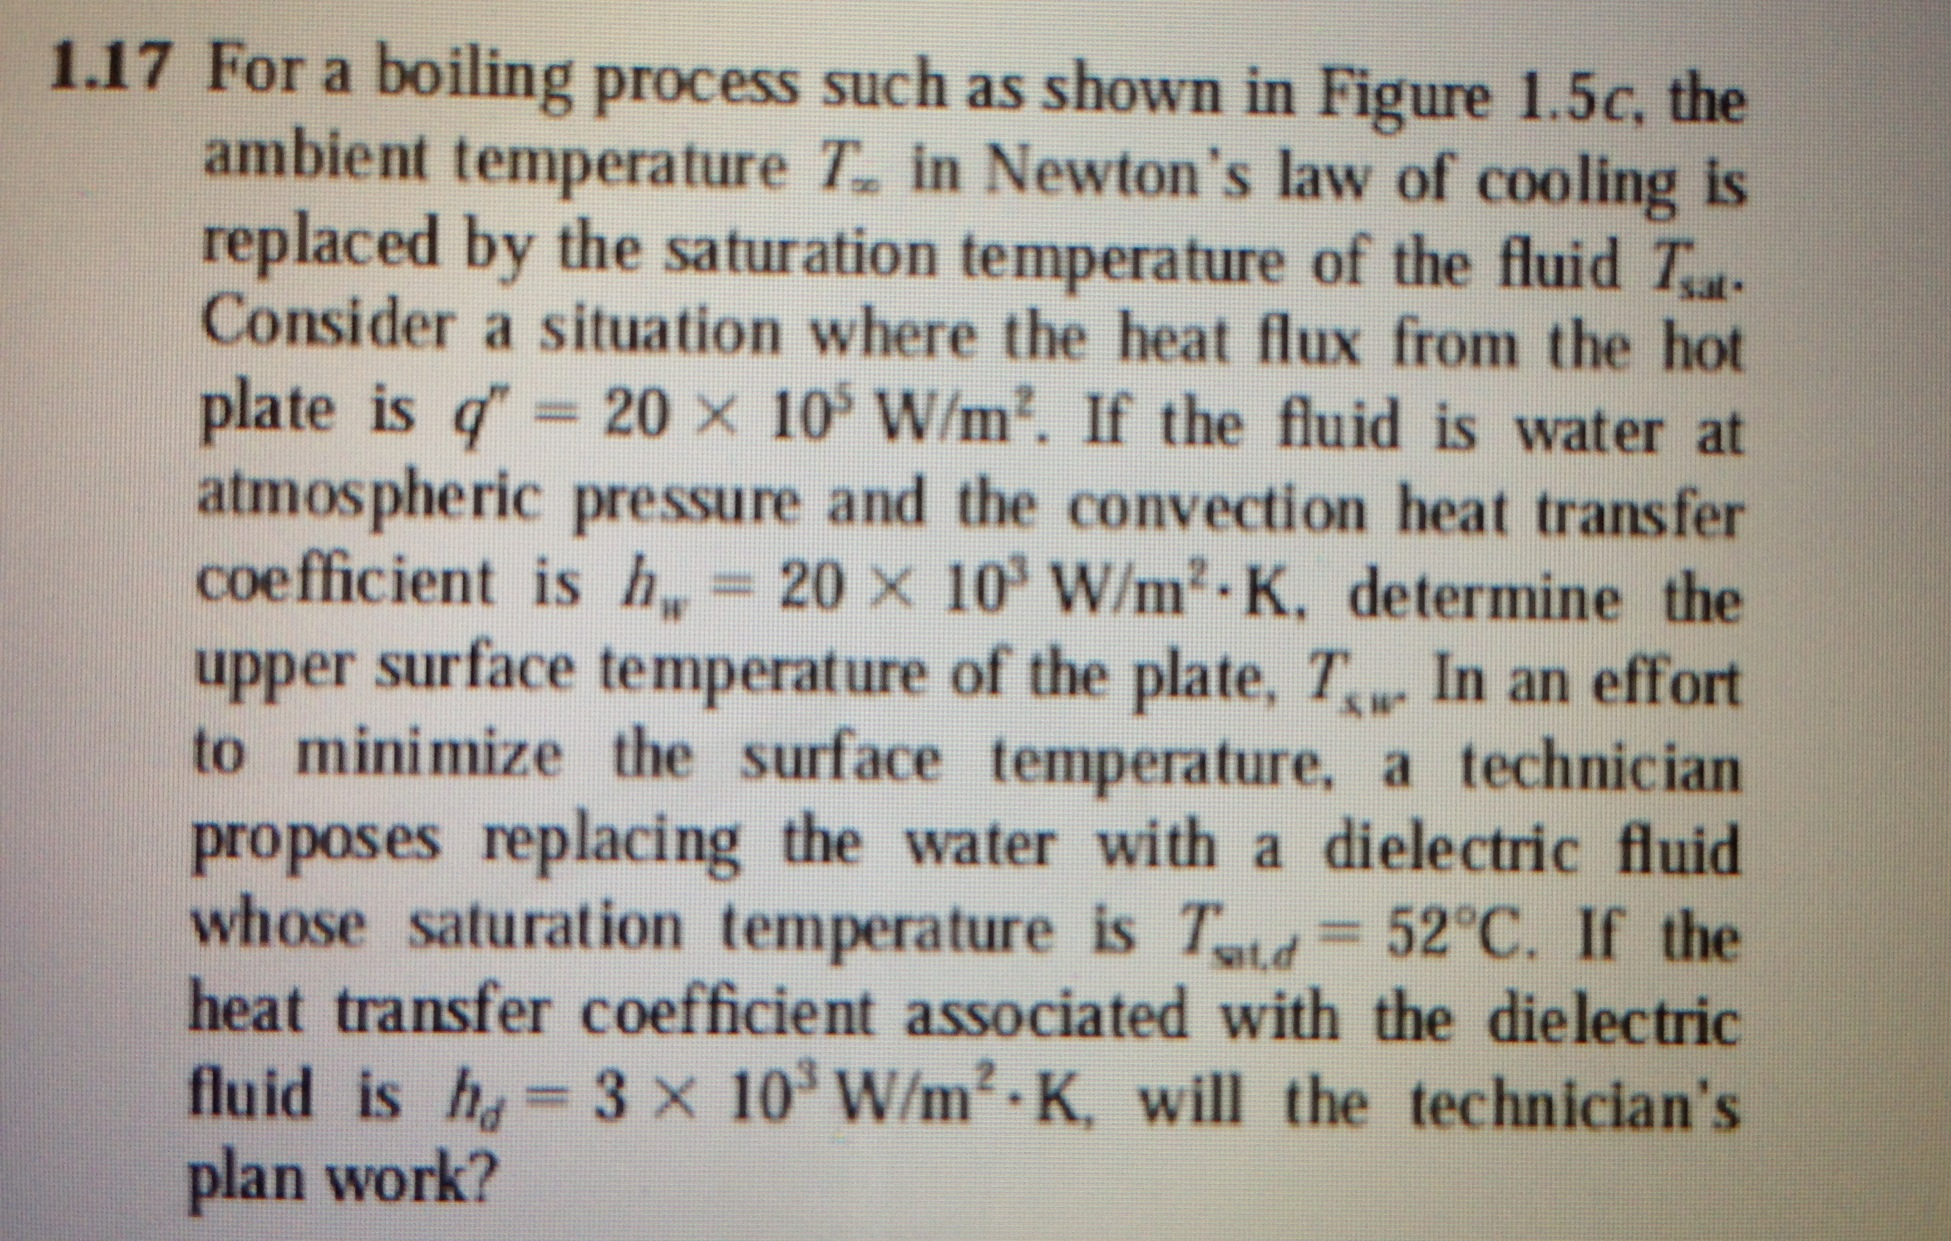 For a boiling process such as shown in Figure 1.5c